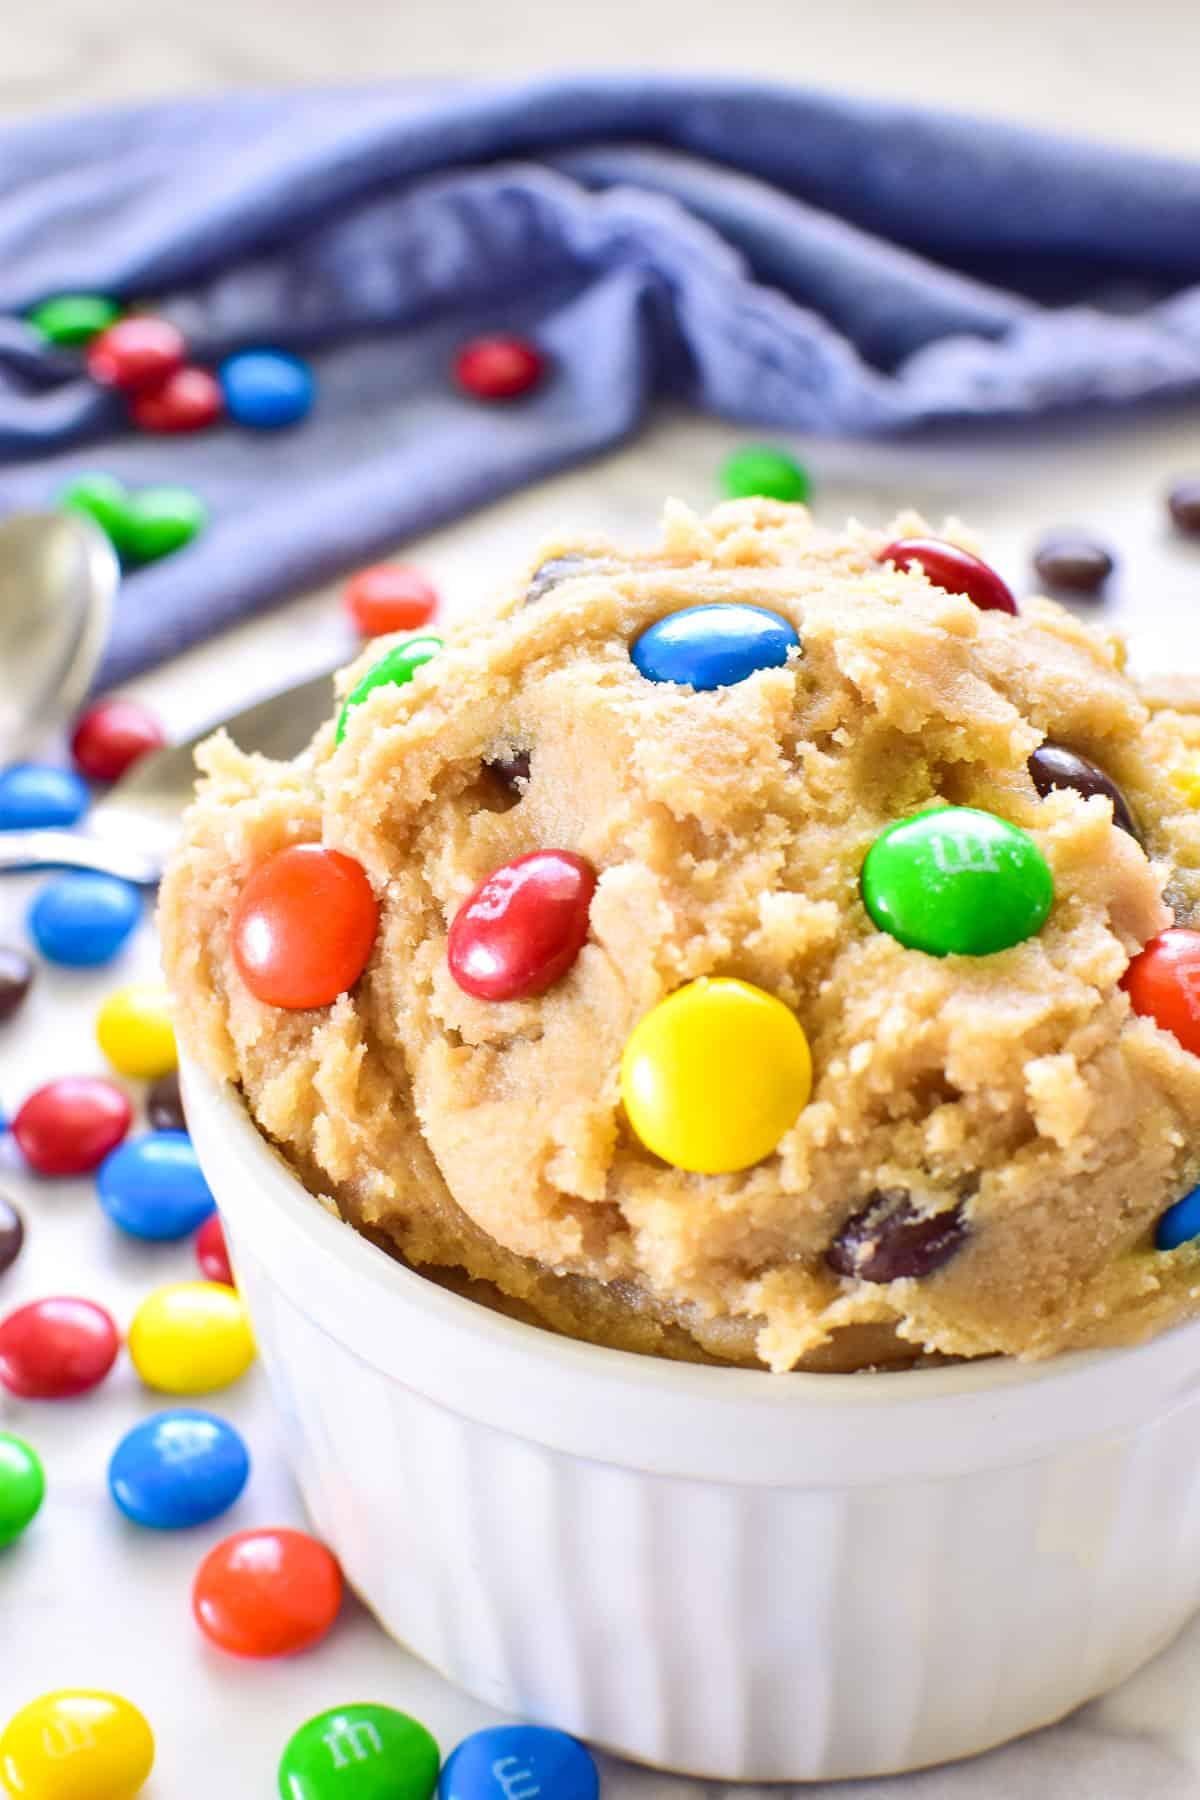 Edible Cookie Dough in bowl with m&m's